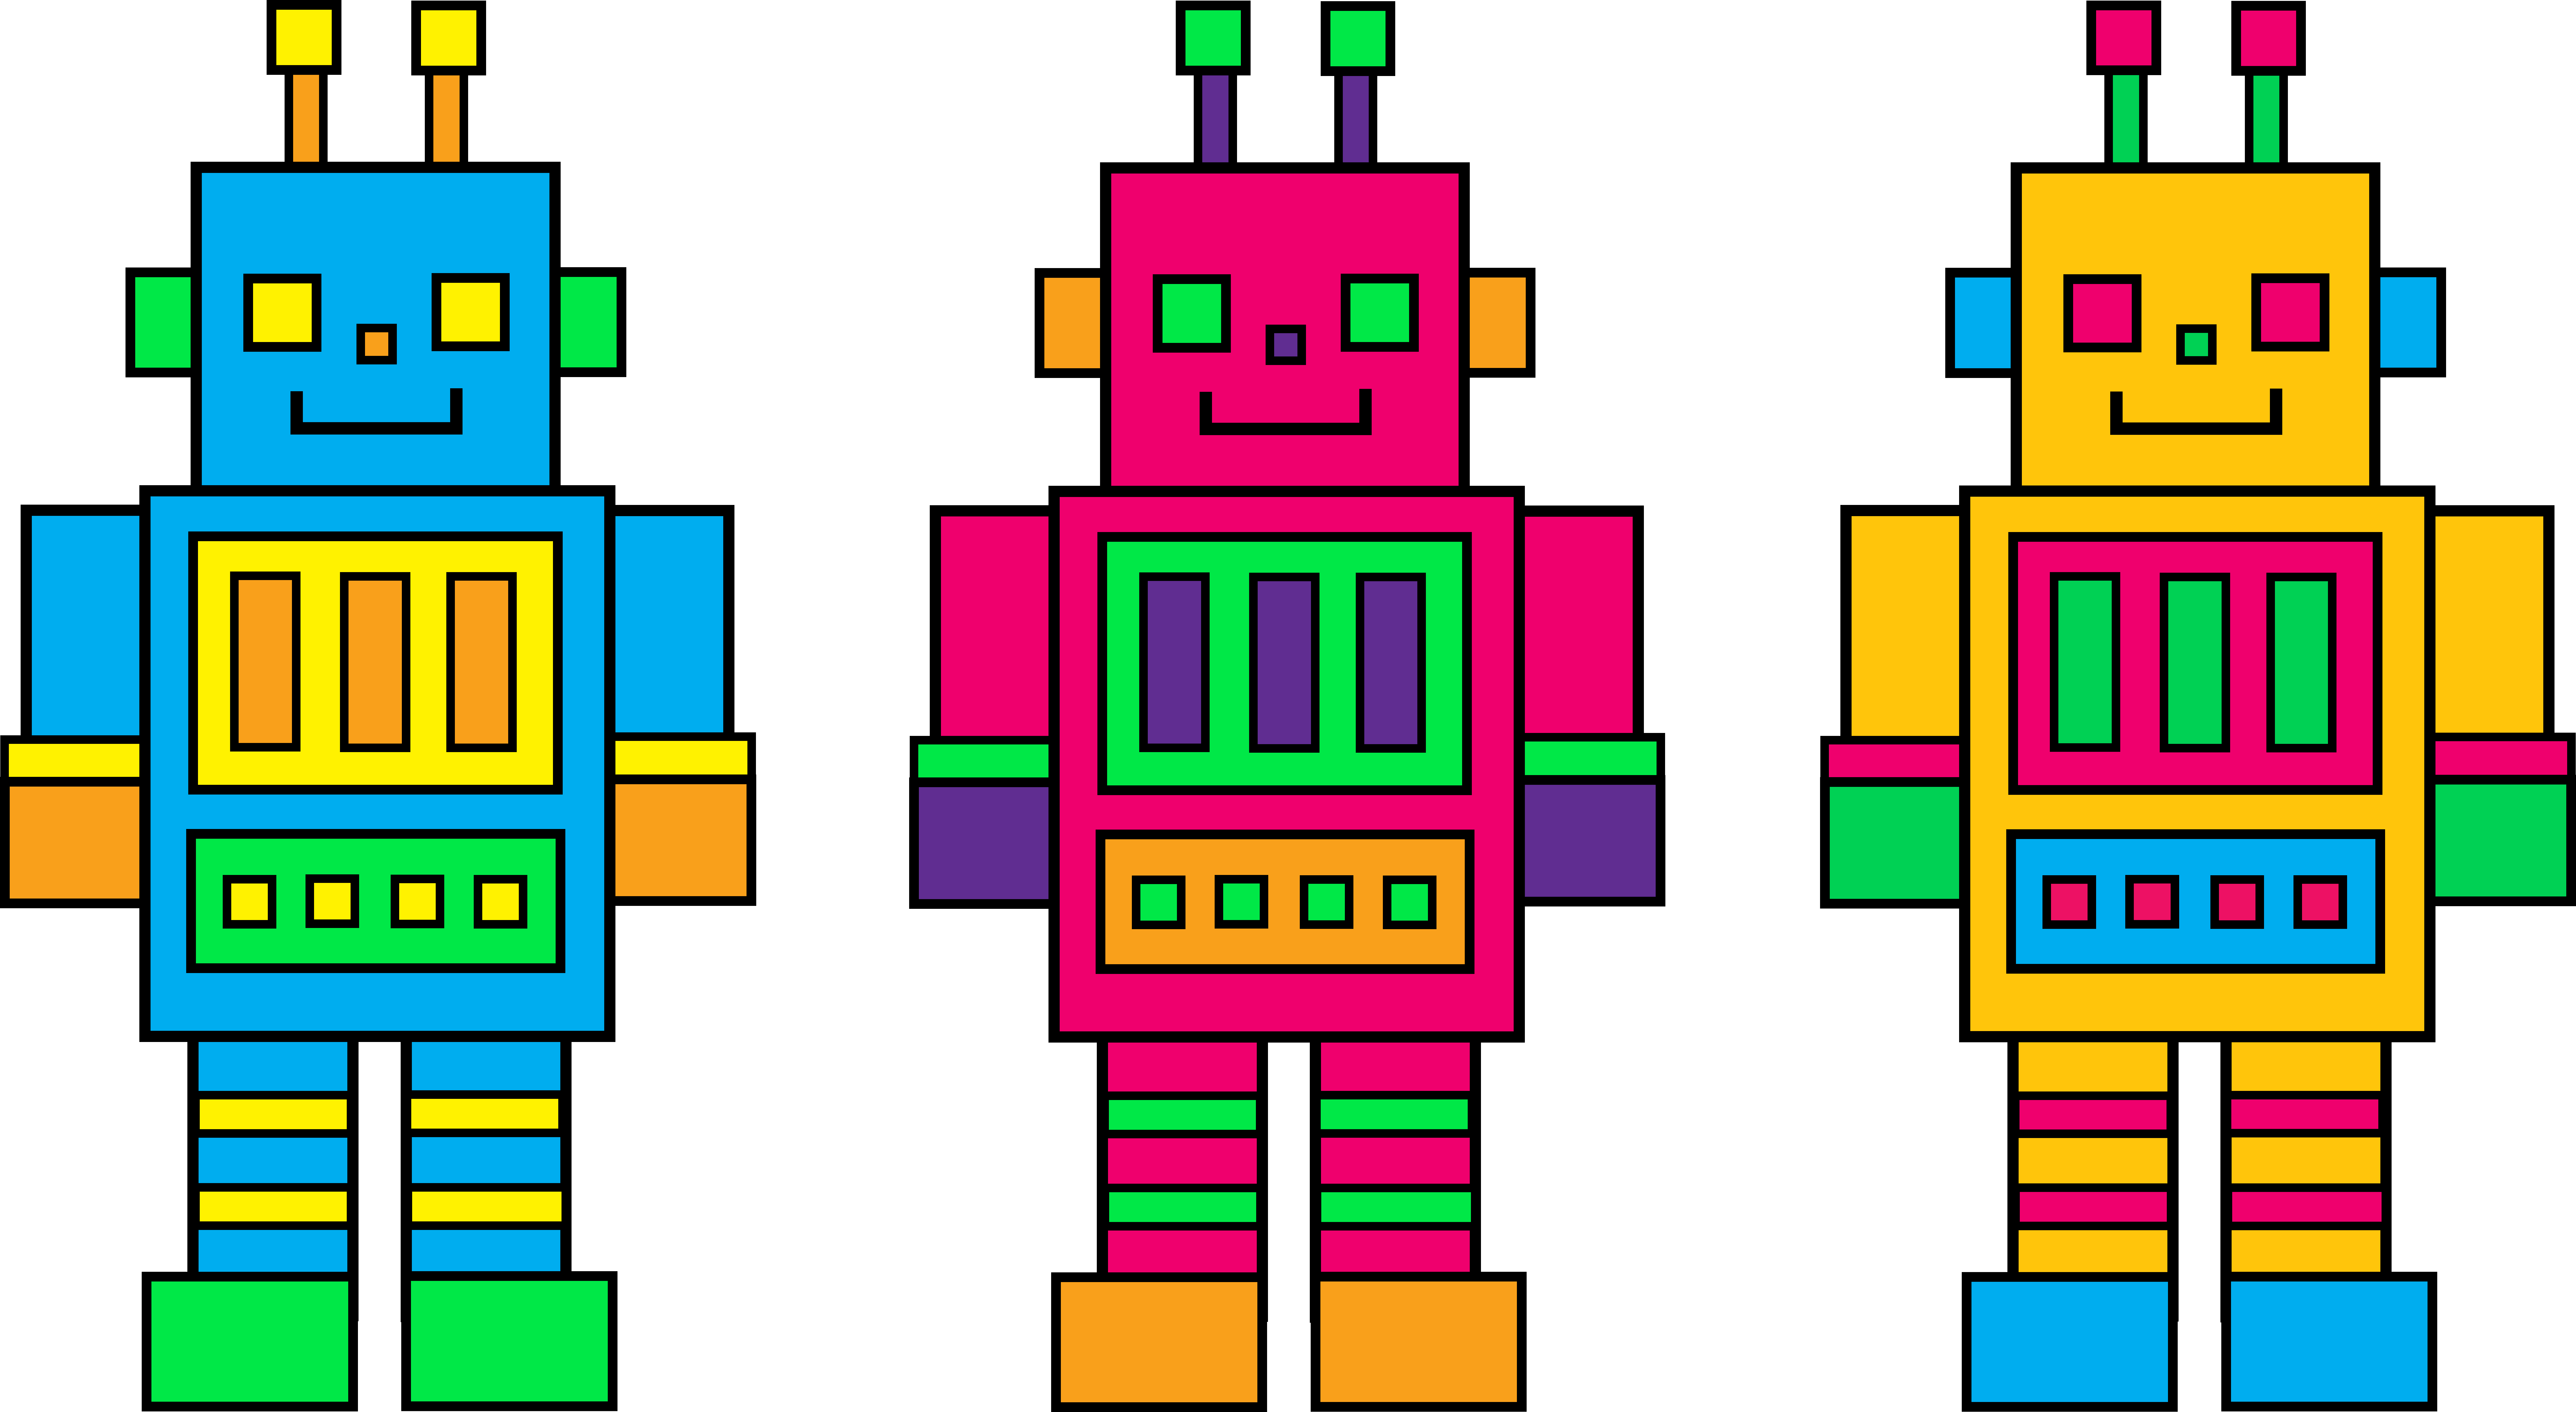 17  images about robot printables on Pinterest | Aliens, Digital art and Clip art